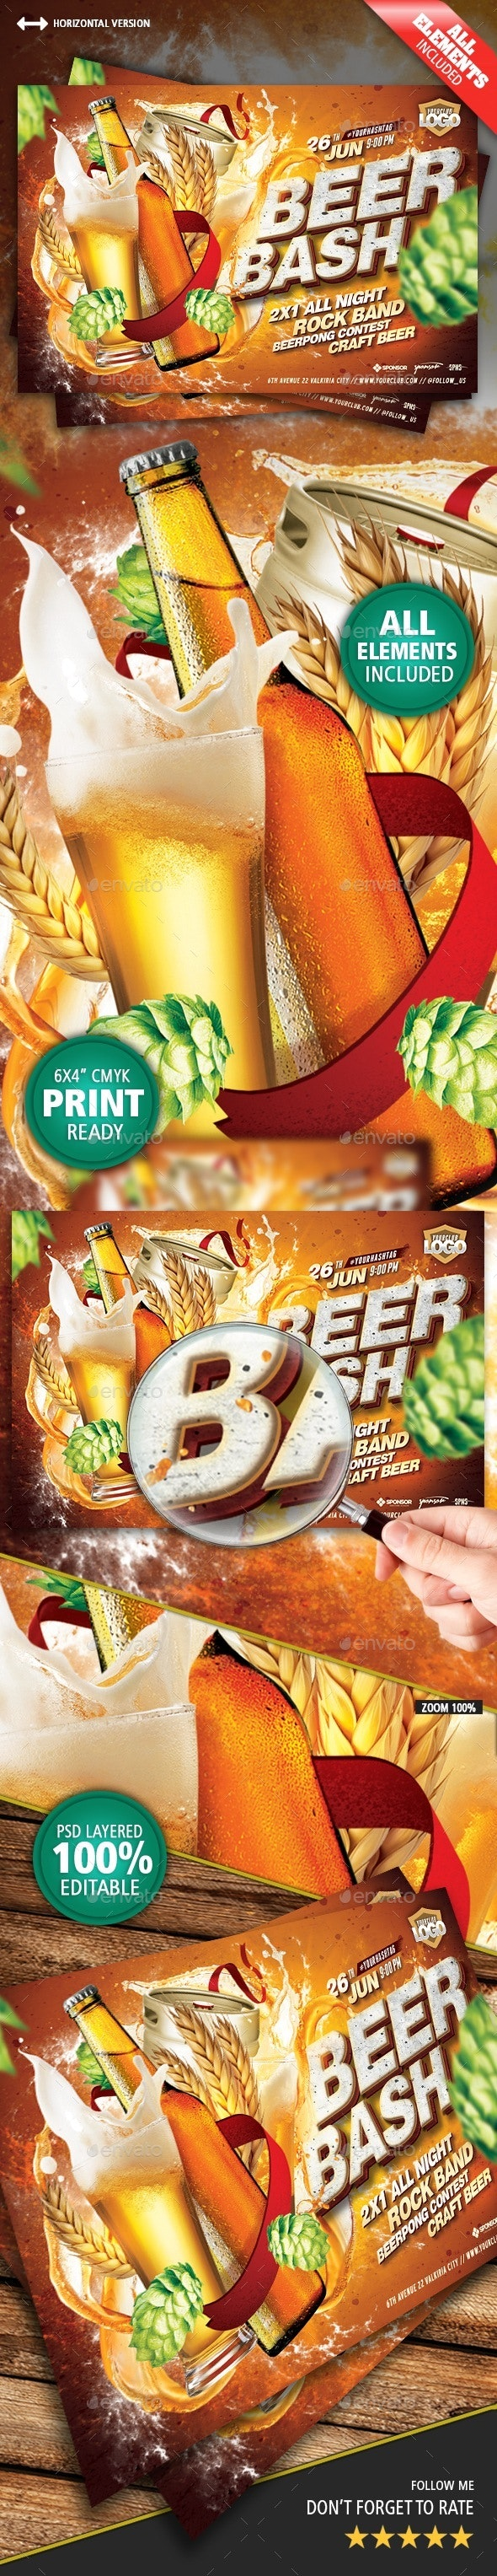 Beer Bash Flyer - Clubs & Parties Events